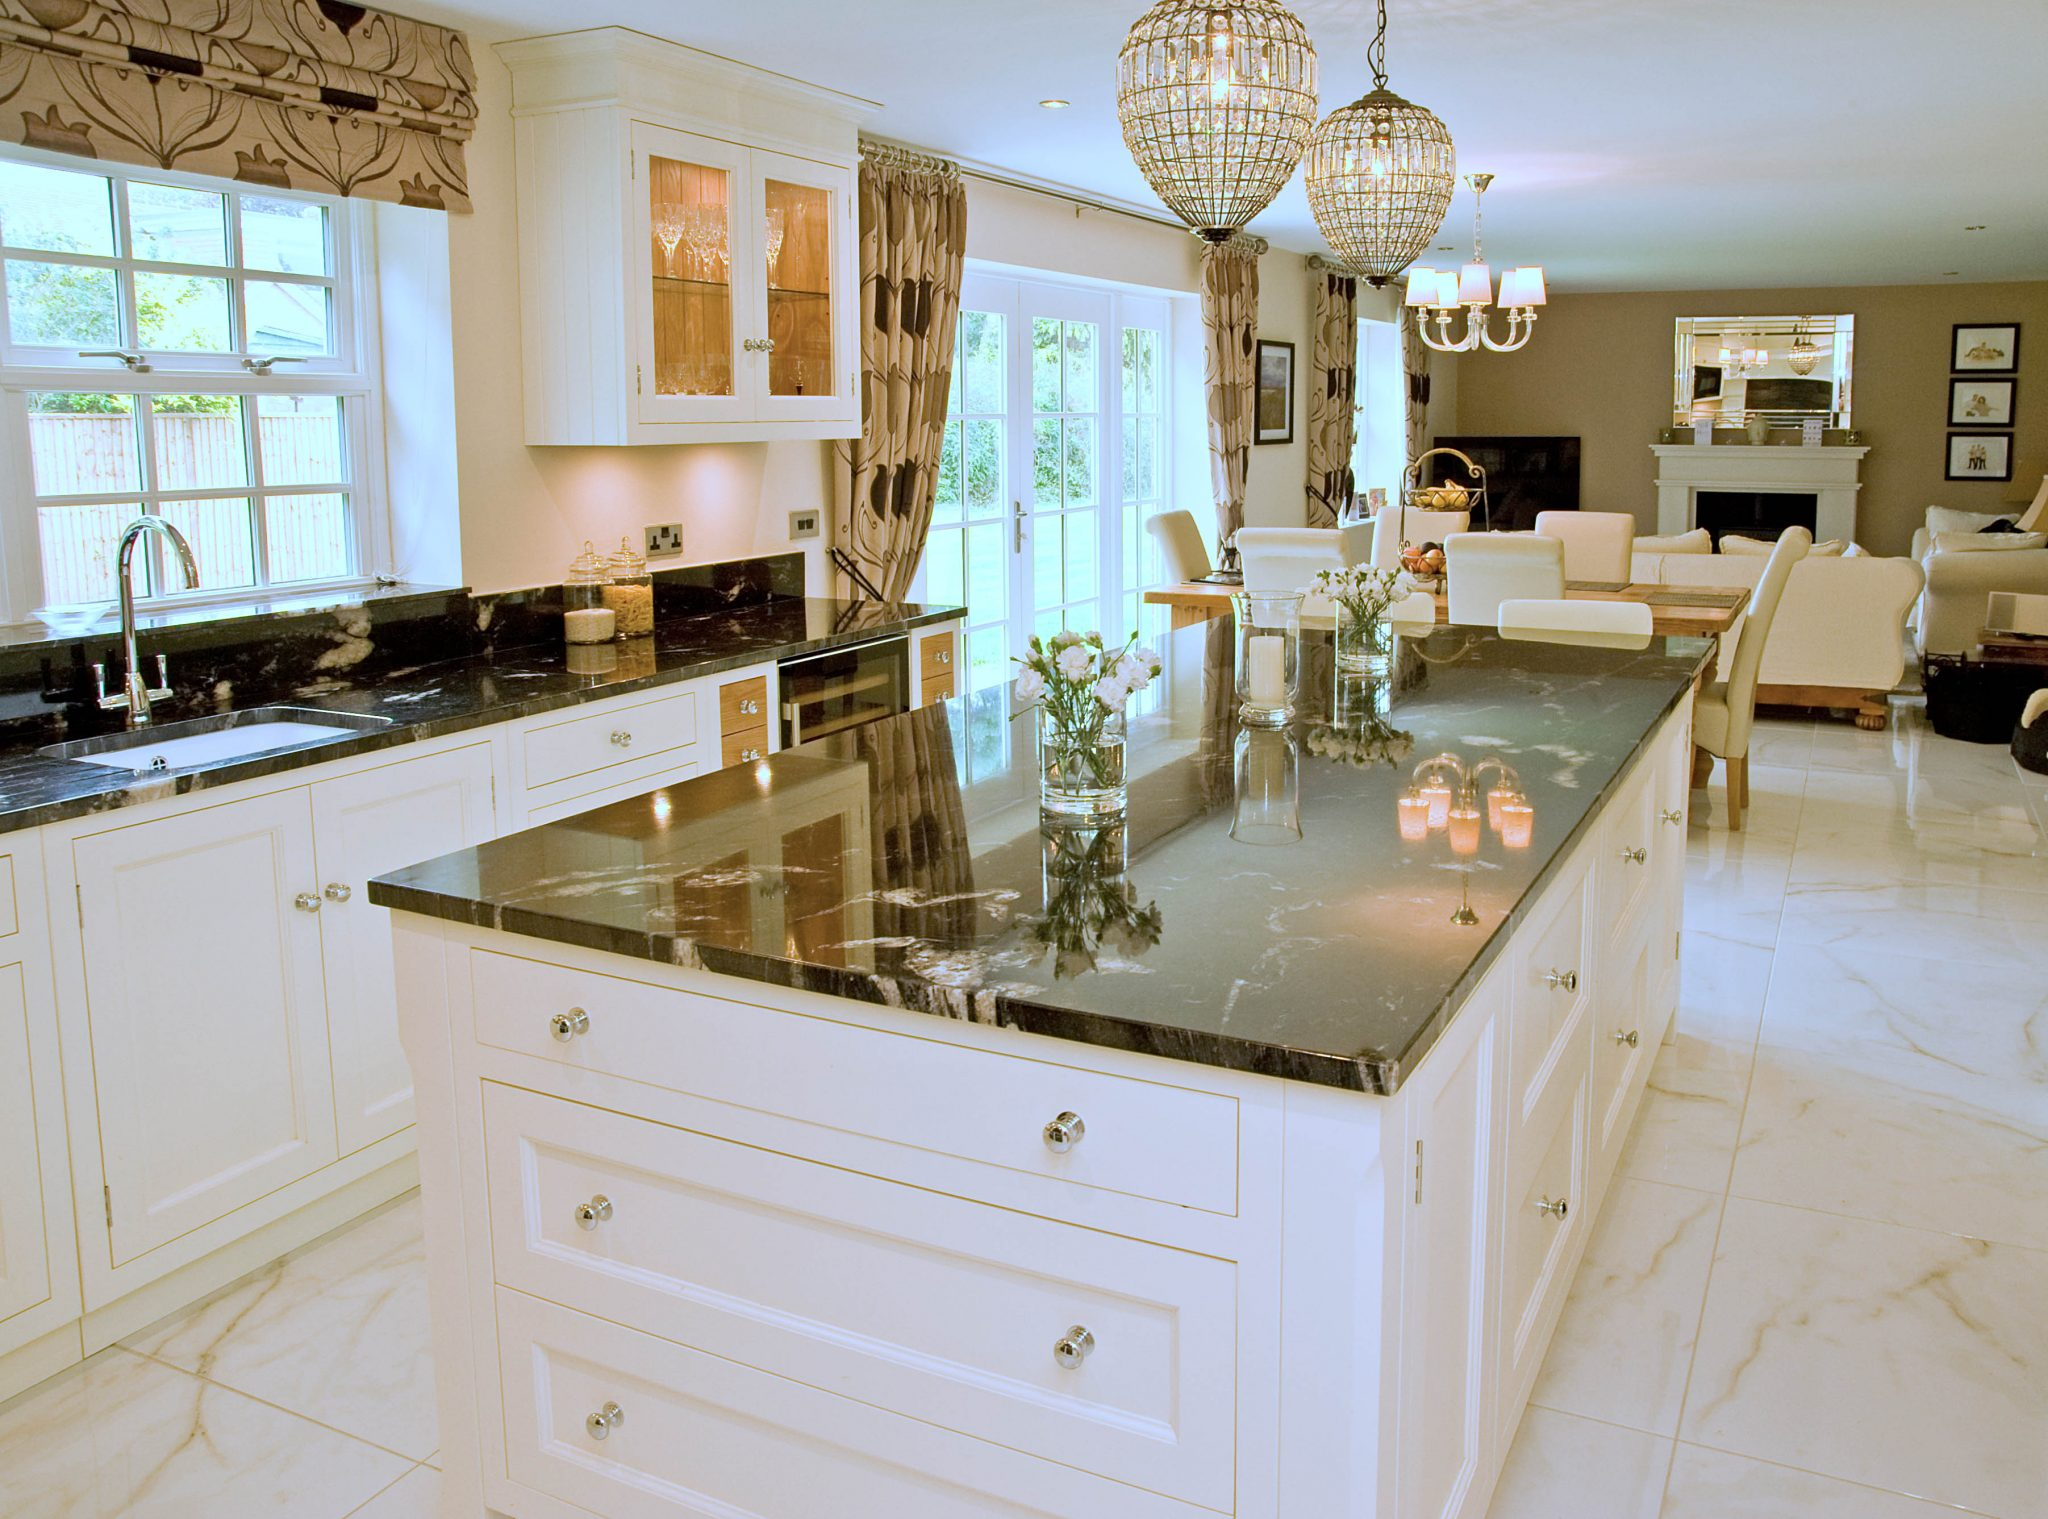 designer kitchen image kitchen design kitchens wirral bespoke luxury designs 448